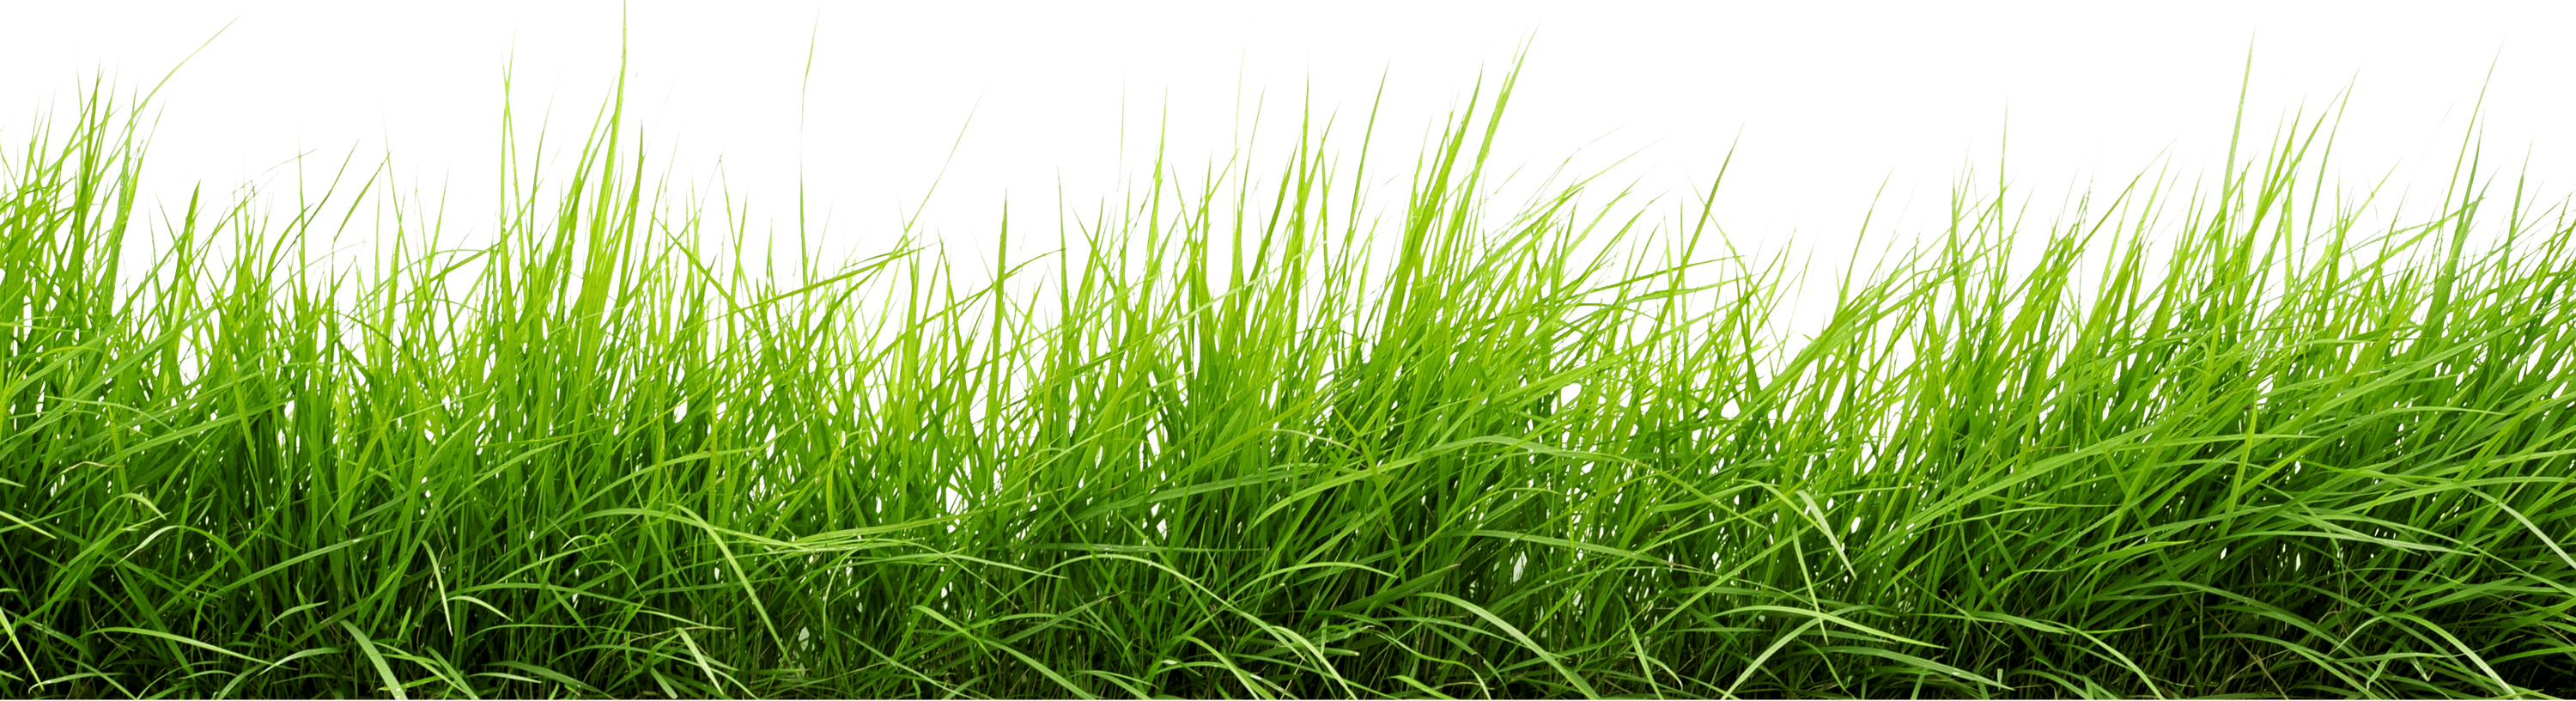 Line of grass png image purepng free transparent cc0 for Tall border grass